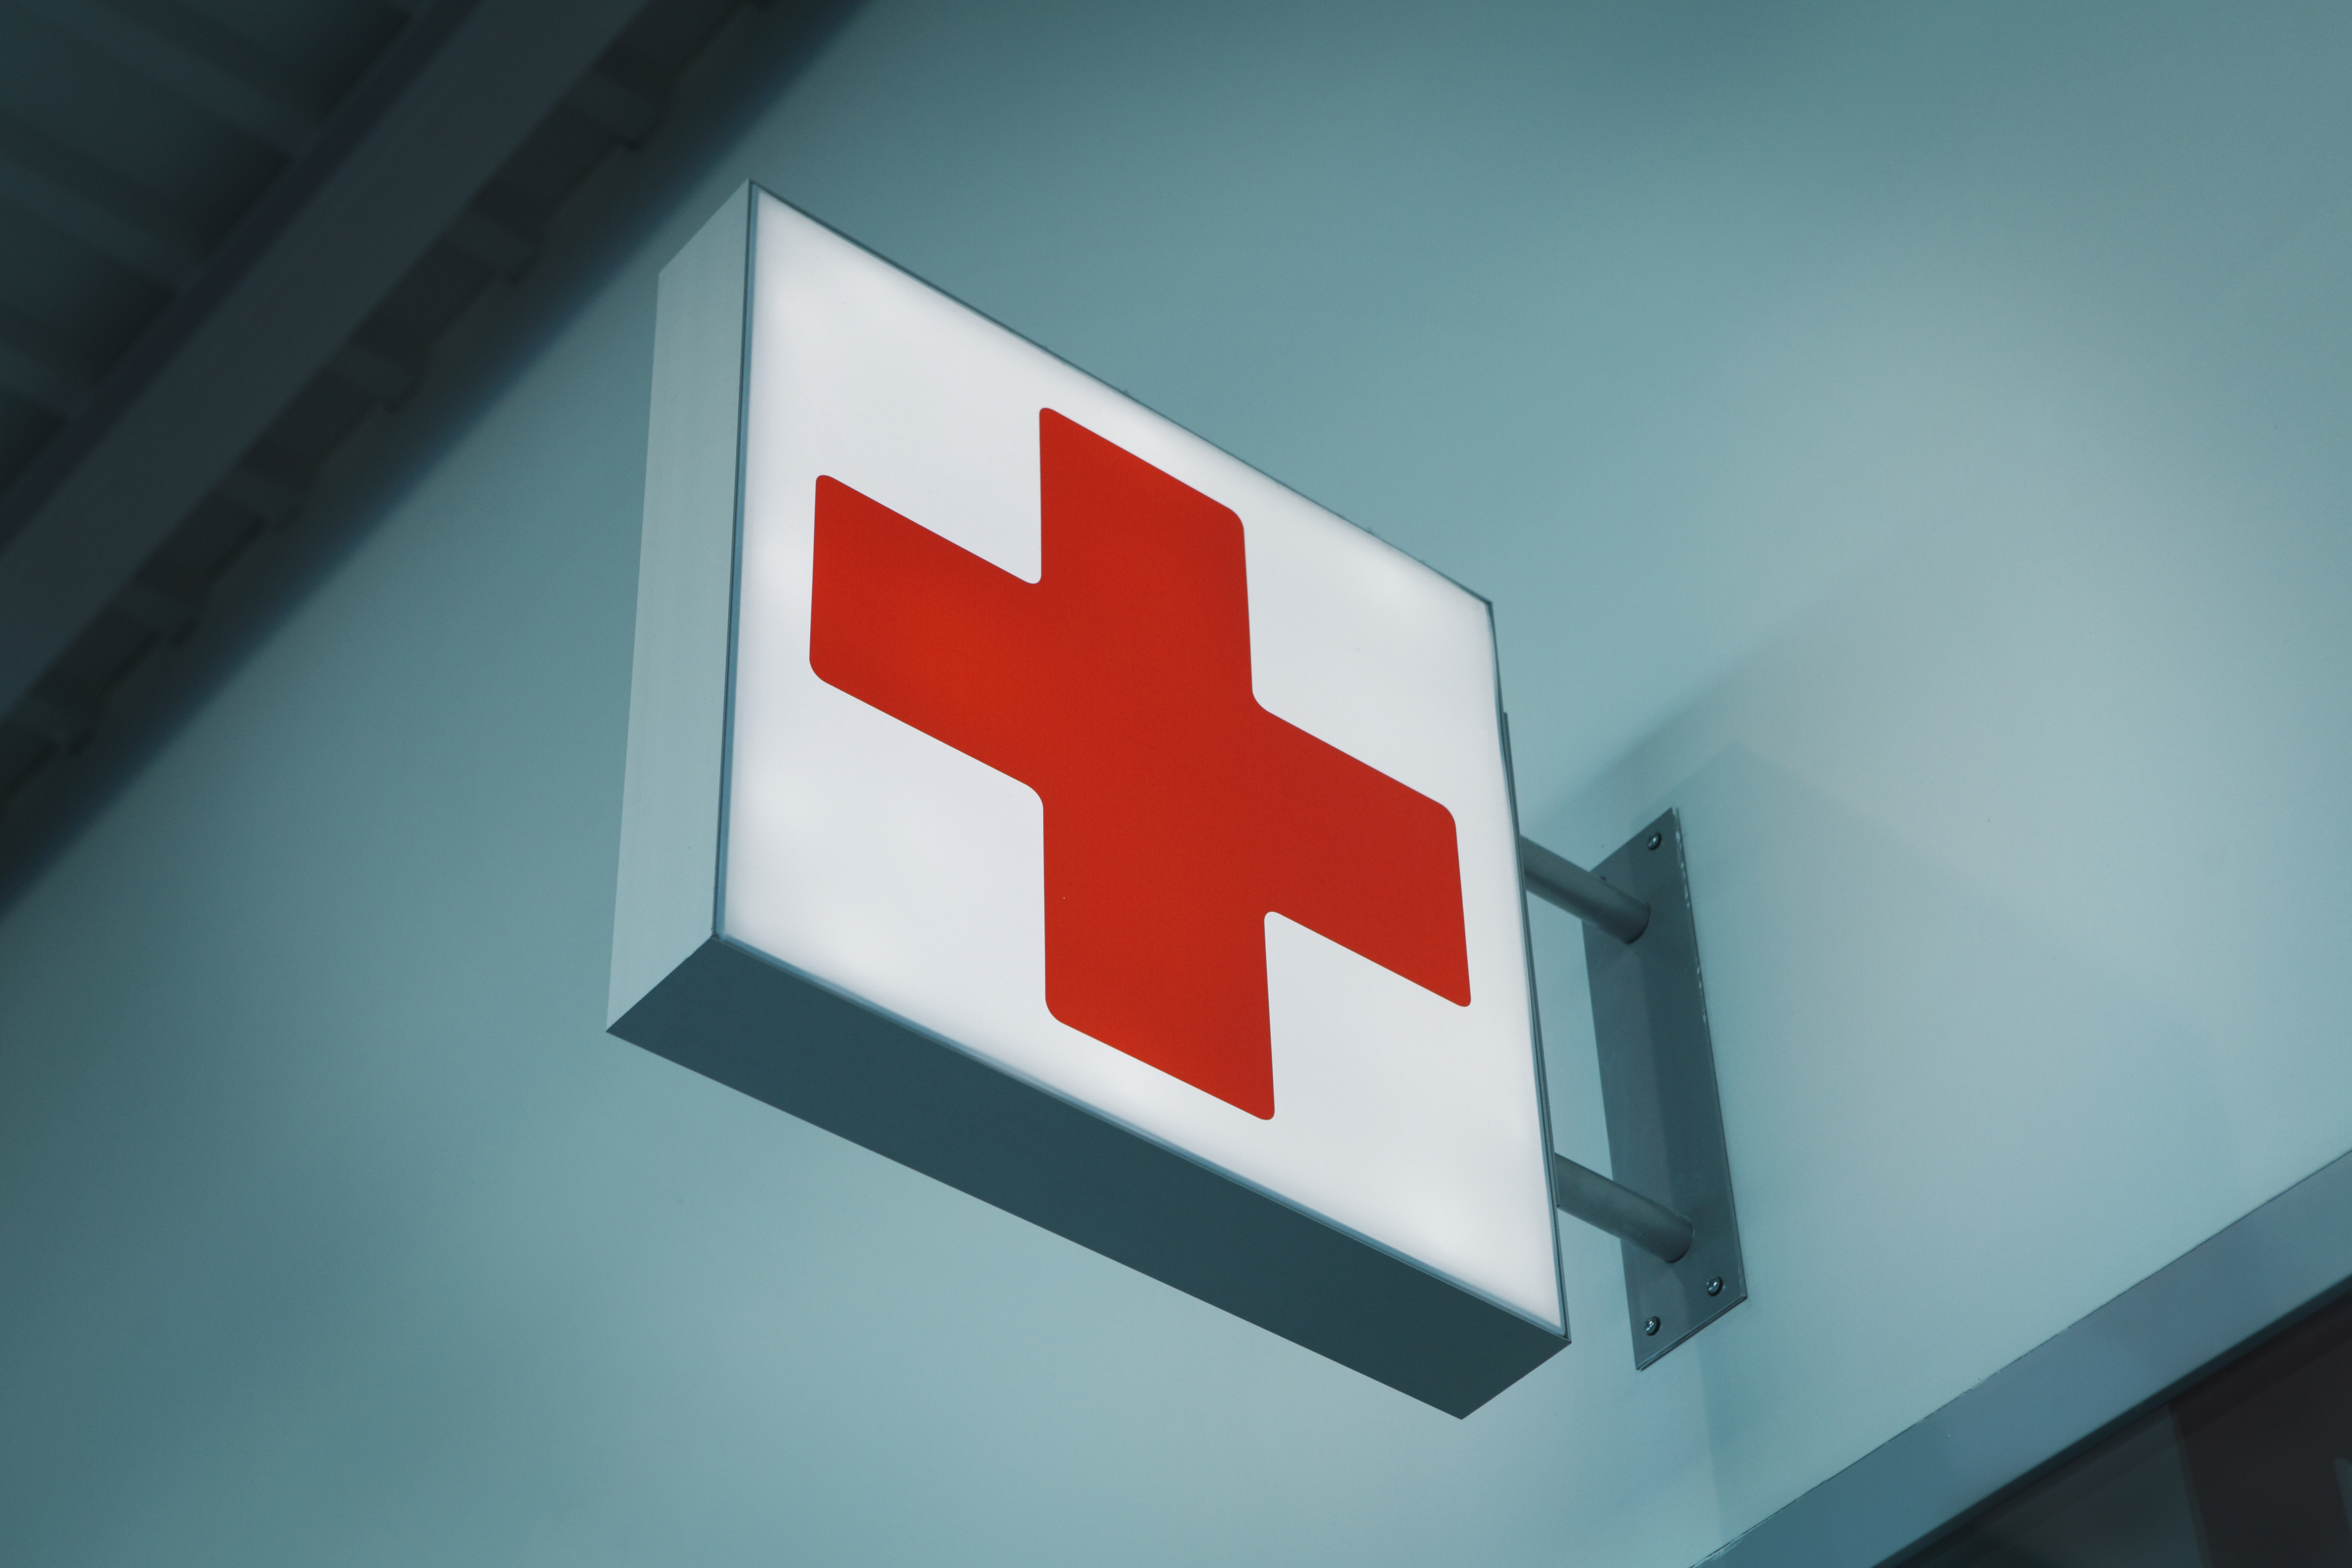 red_and_white_emergency_sign